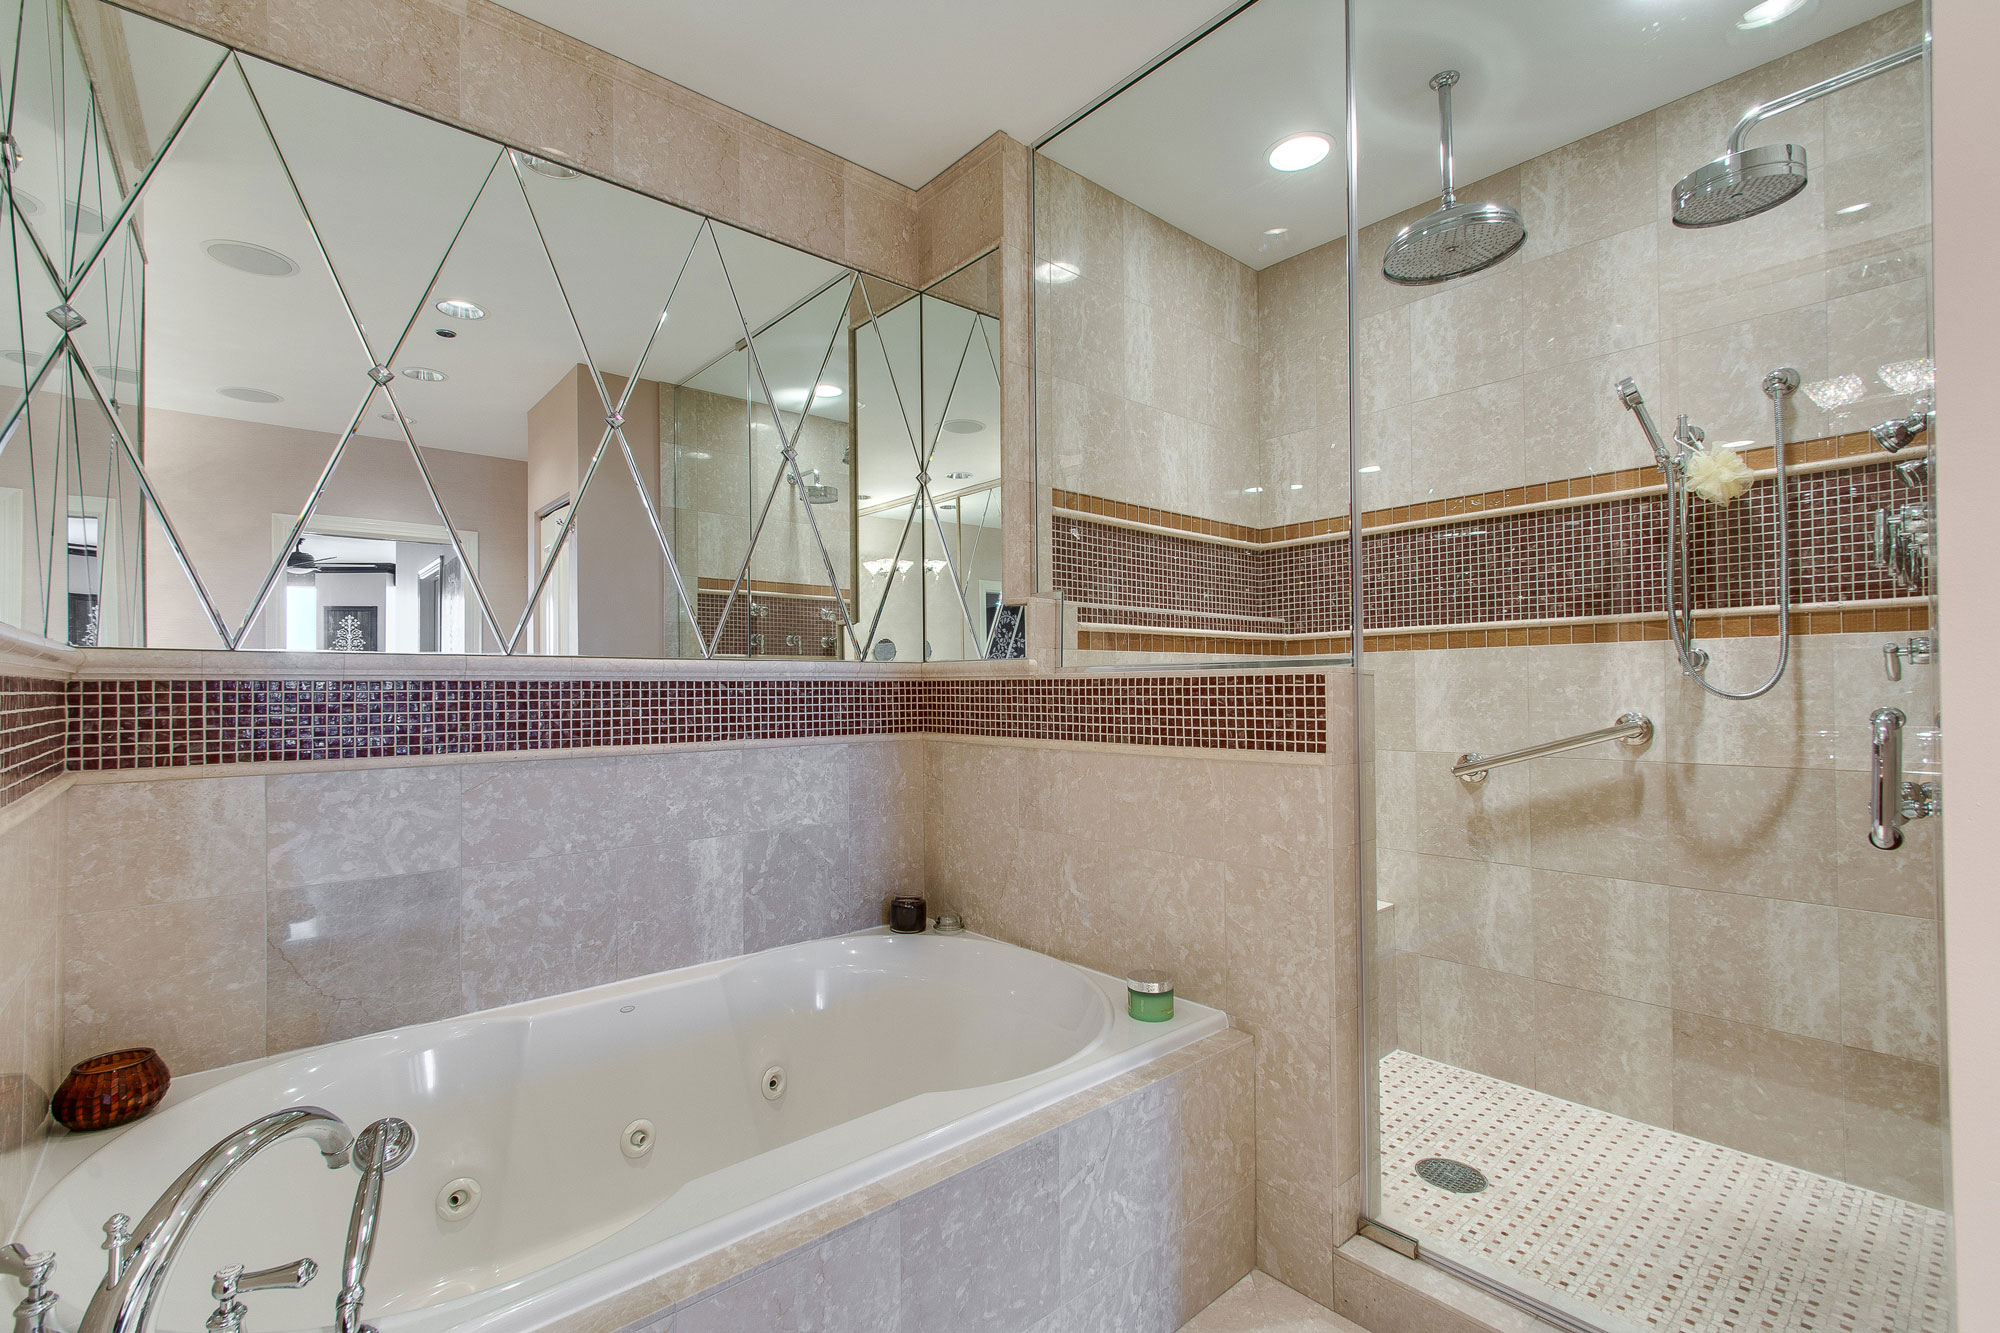 6 Inch Frosted and Clear Lens Shower Trim & Moises Malave - ALA Lighting Specialistu003cbru003eChicago Showroom at ...